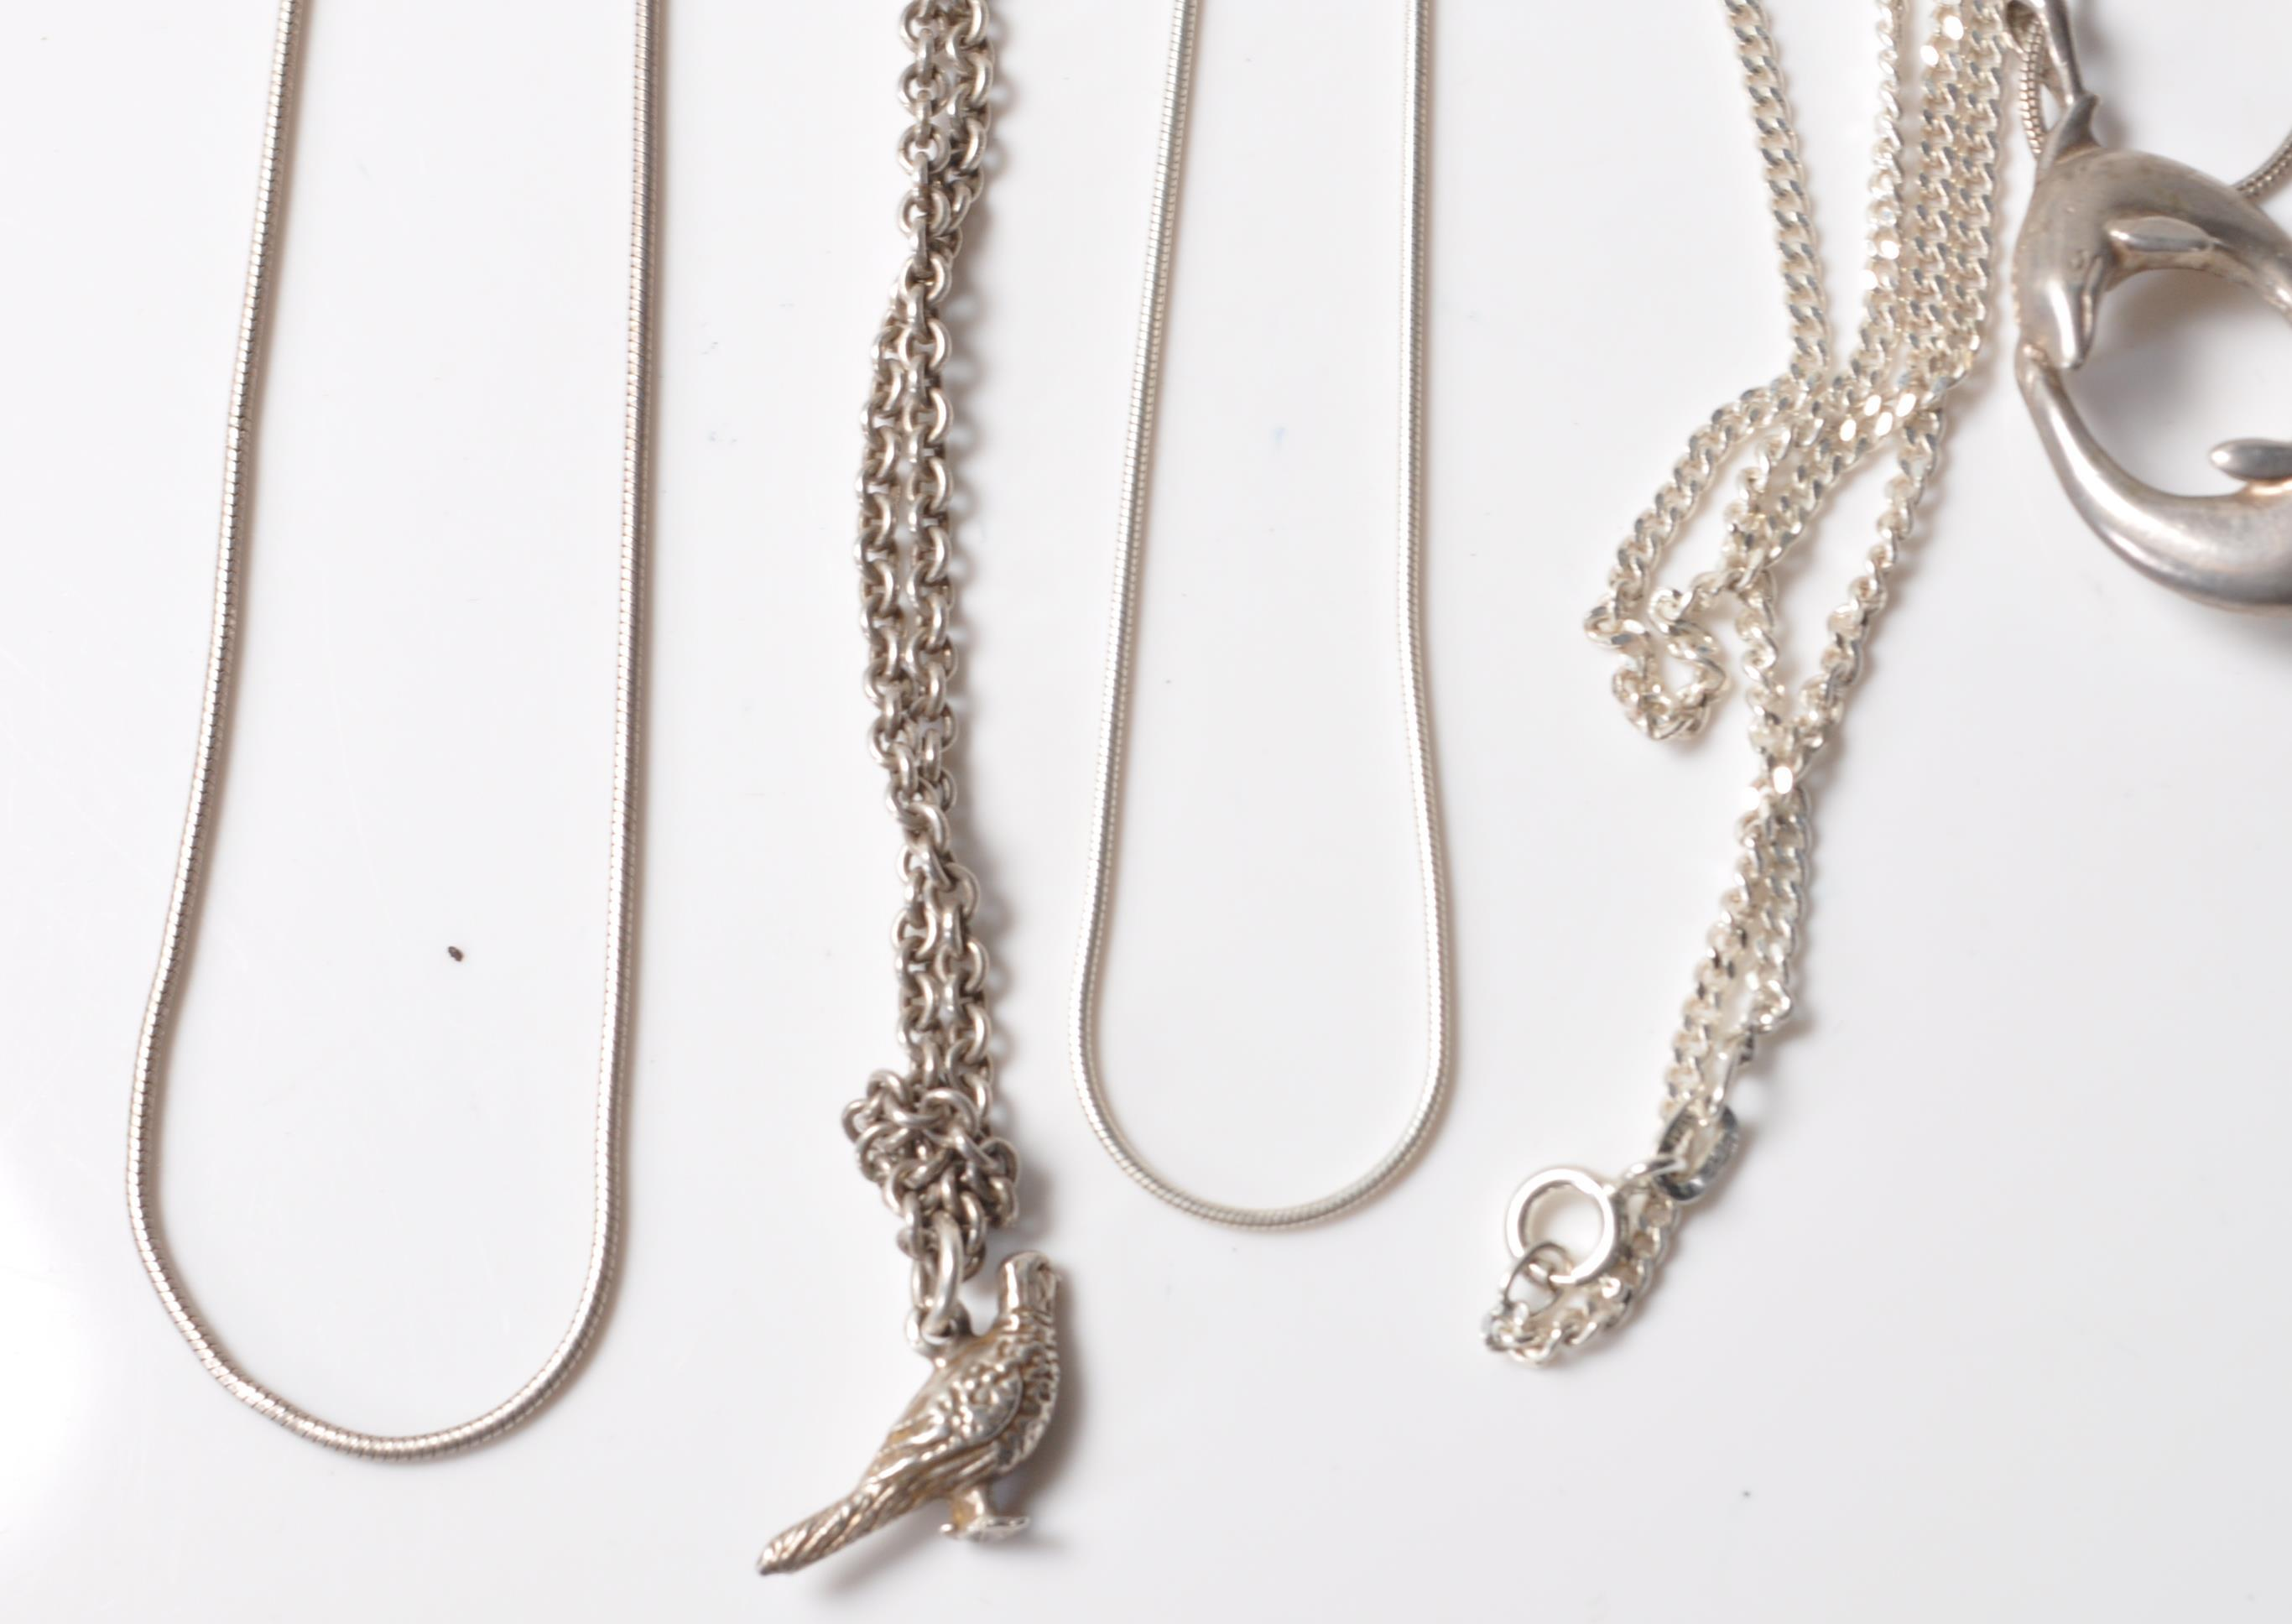 COLLECTION OF STAMPED 925 SILVER NECKLACES AND PENDANTS. - Image 2 of 12